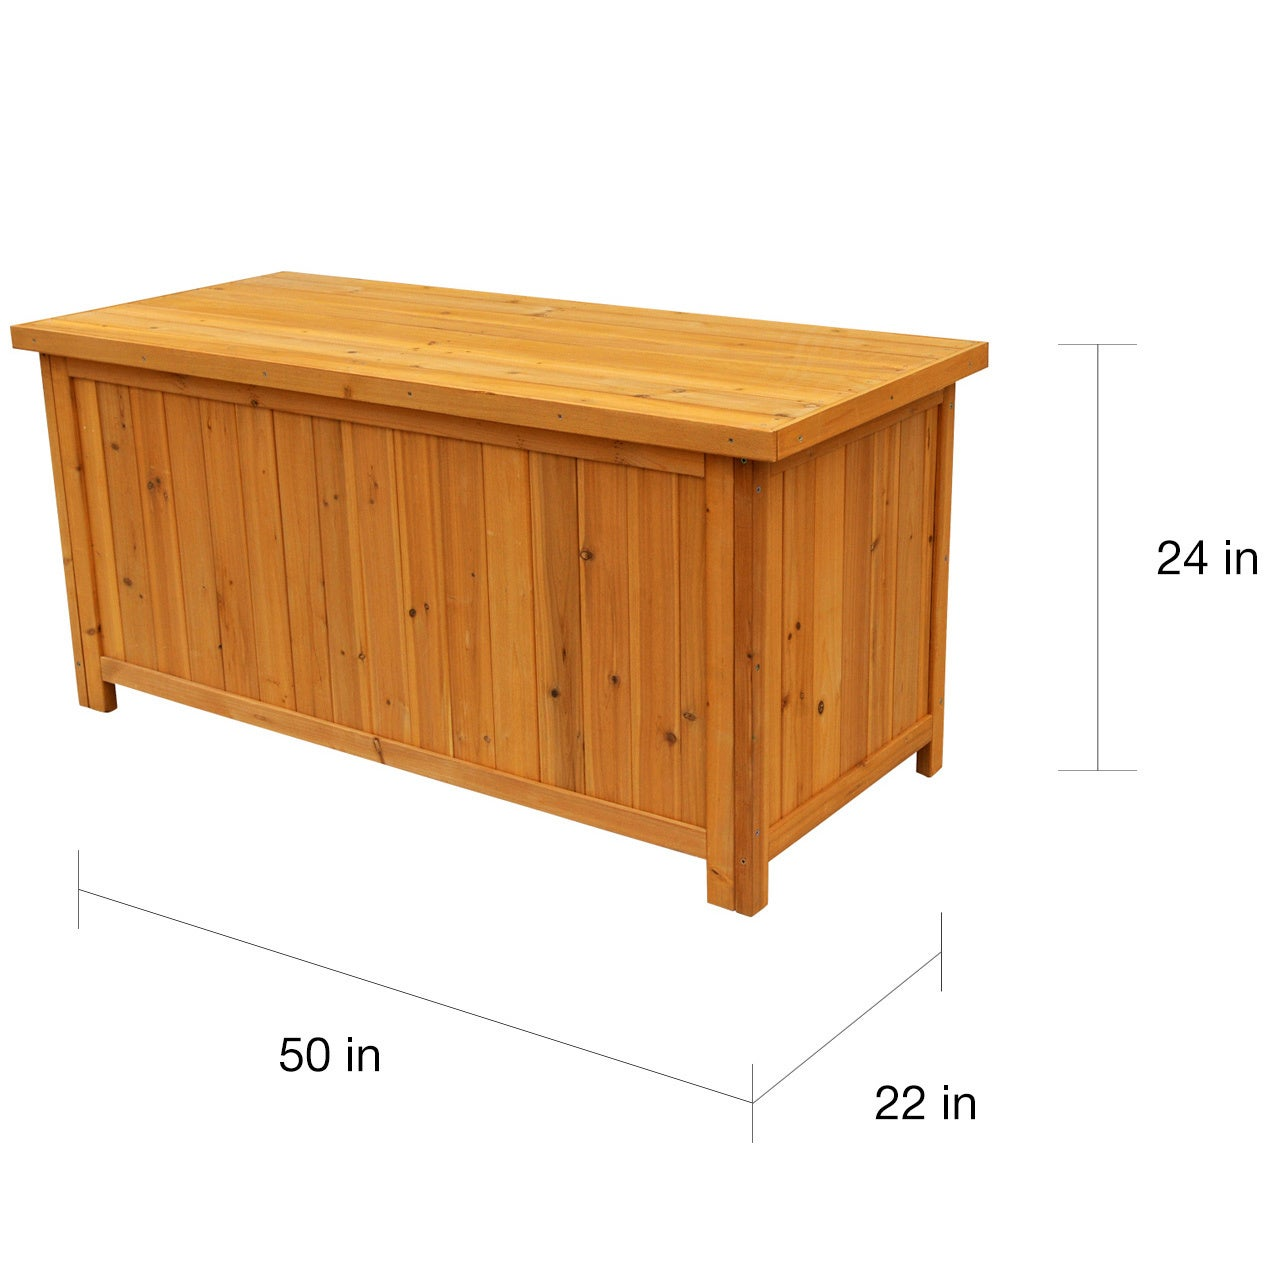 Solid Wood Deck Storage Box Free Shipping Today 8037683